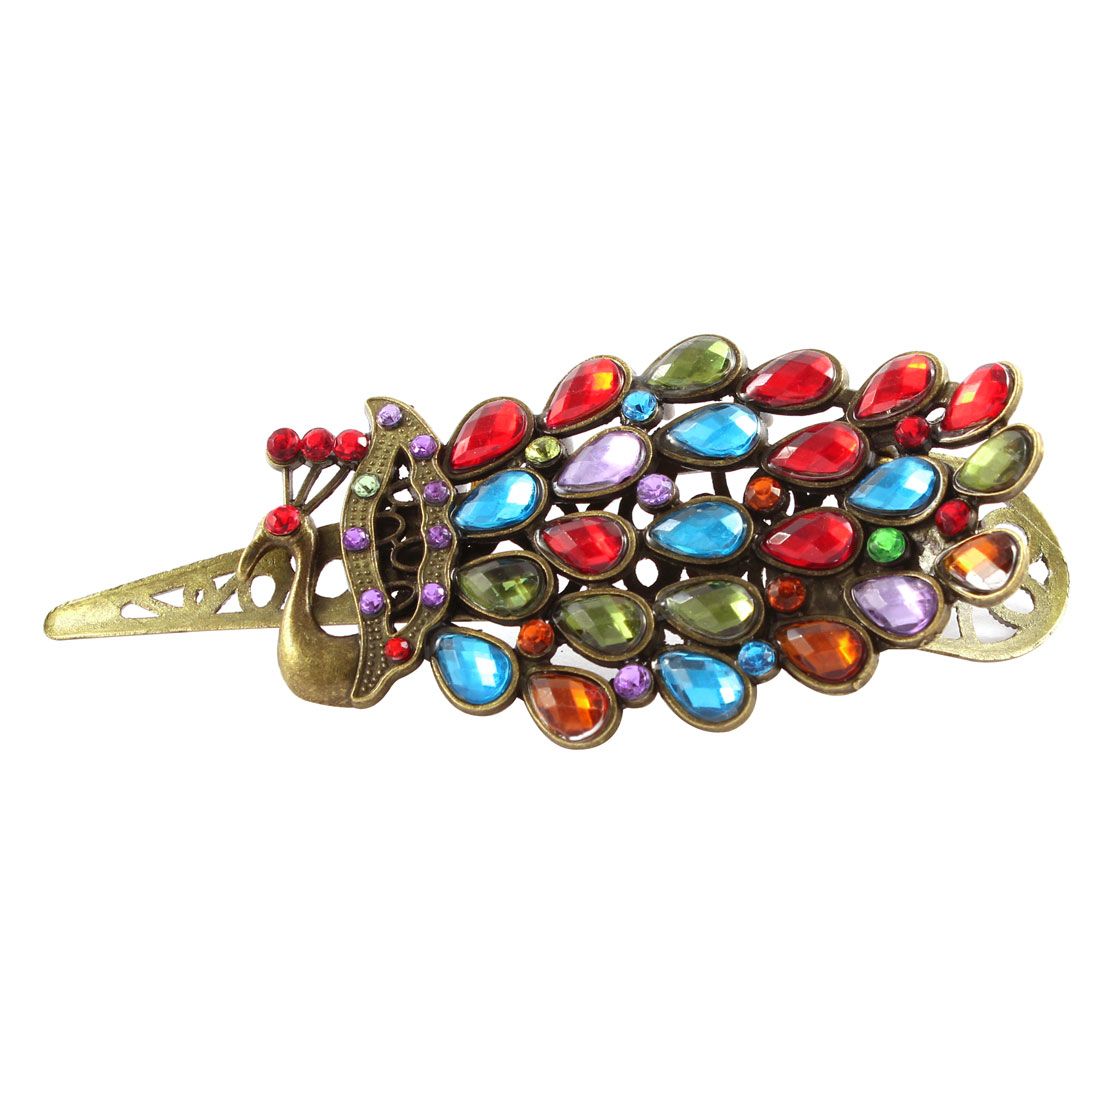 Retro Style Rhinestone Hair Barrette Hairclip Claw Headband Colorful